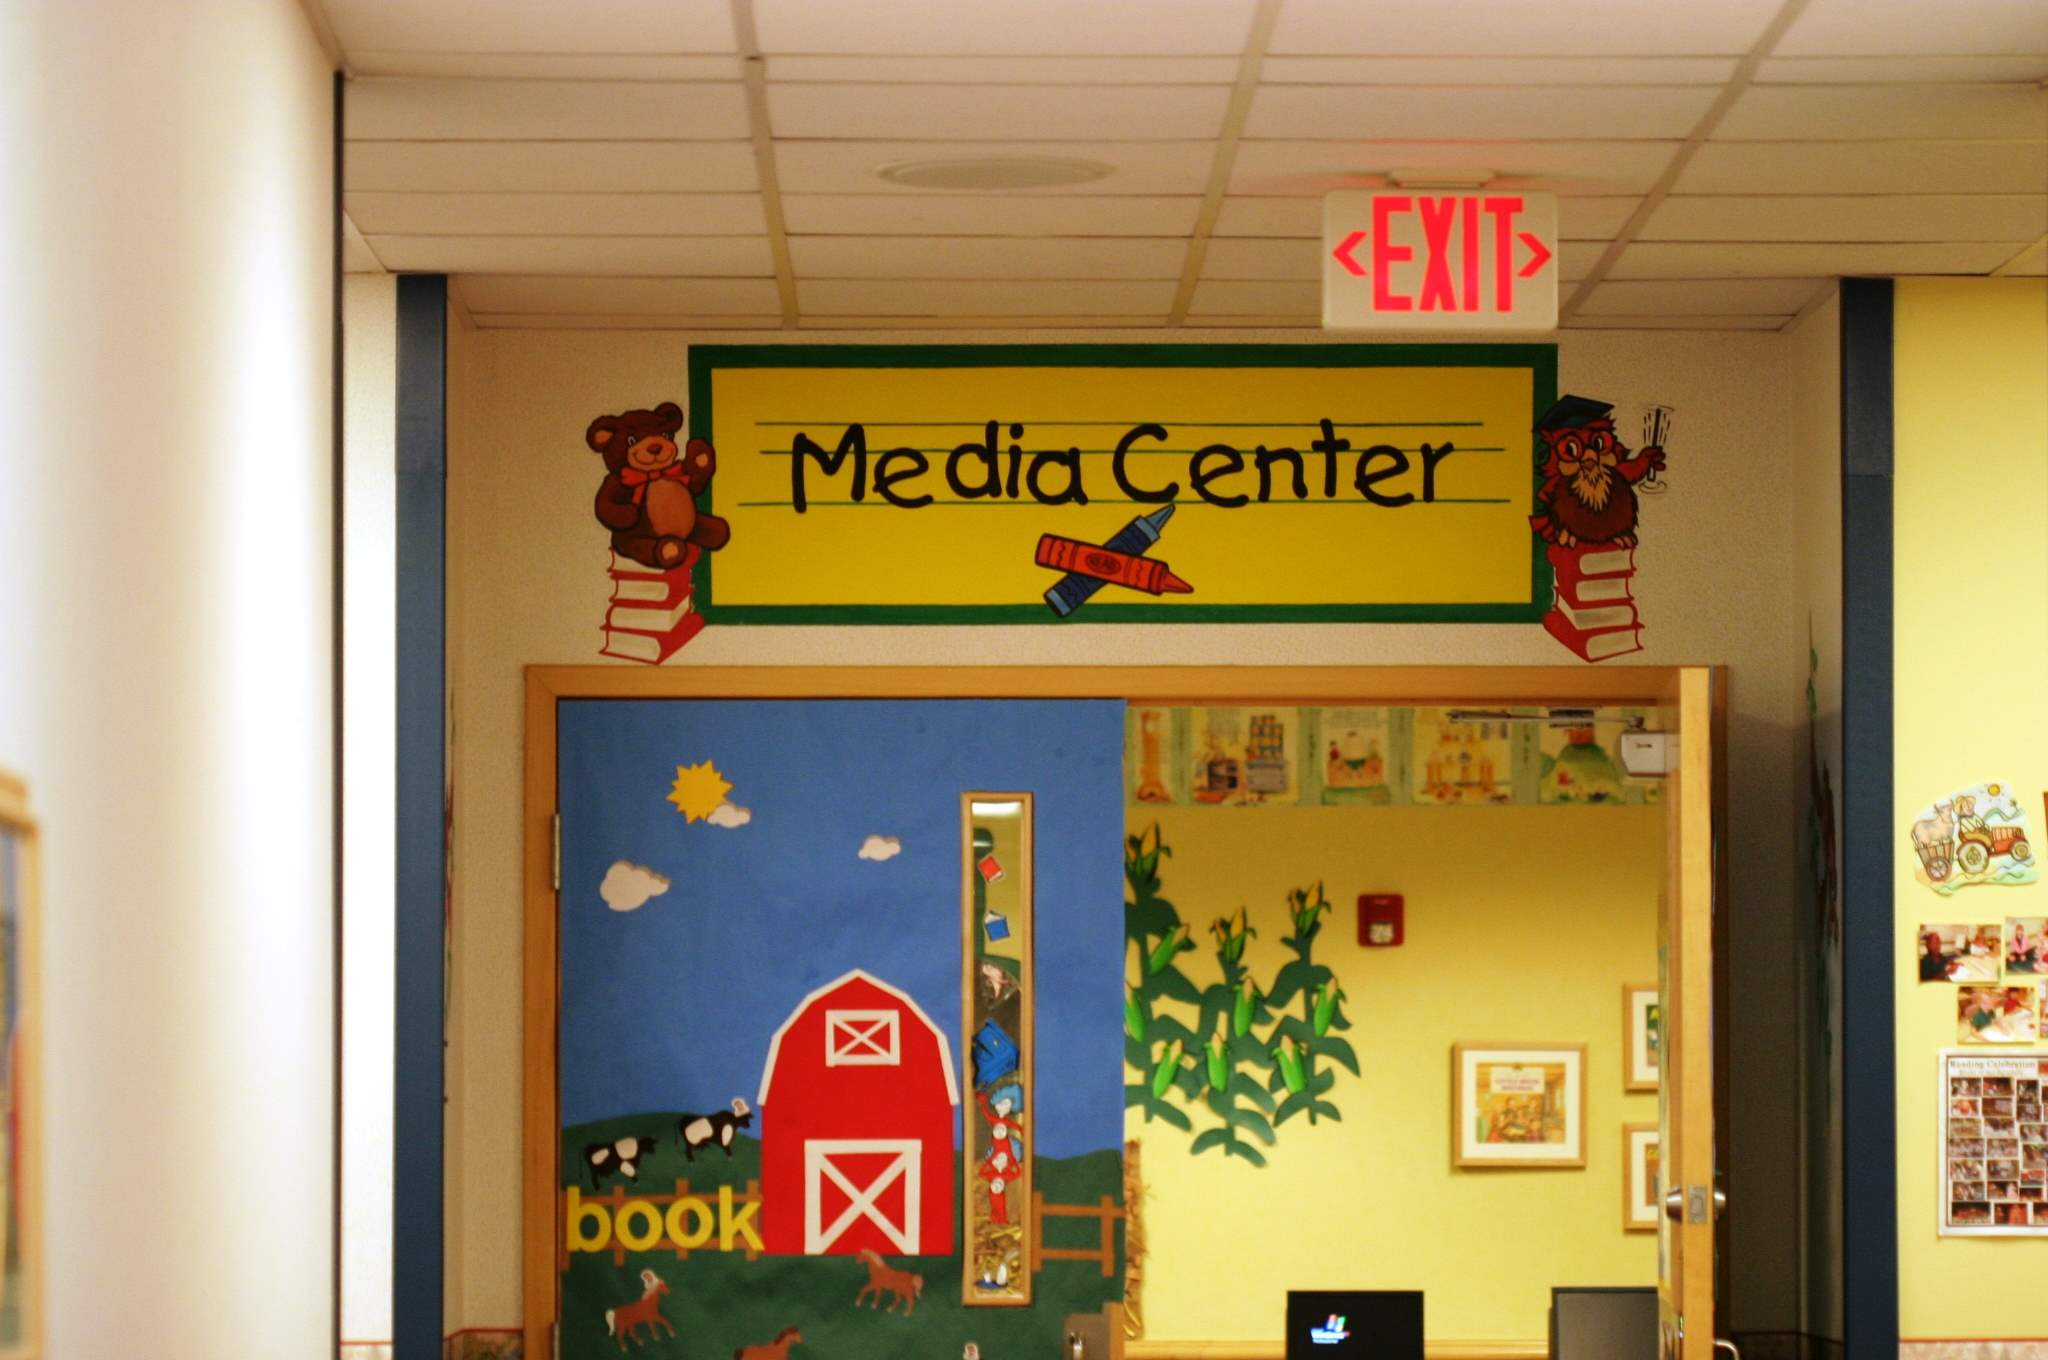 Primary Center image 7 of 15